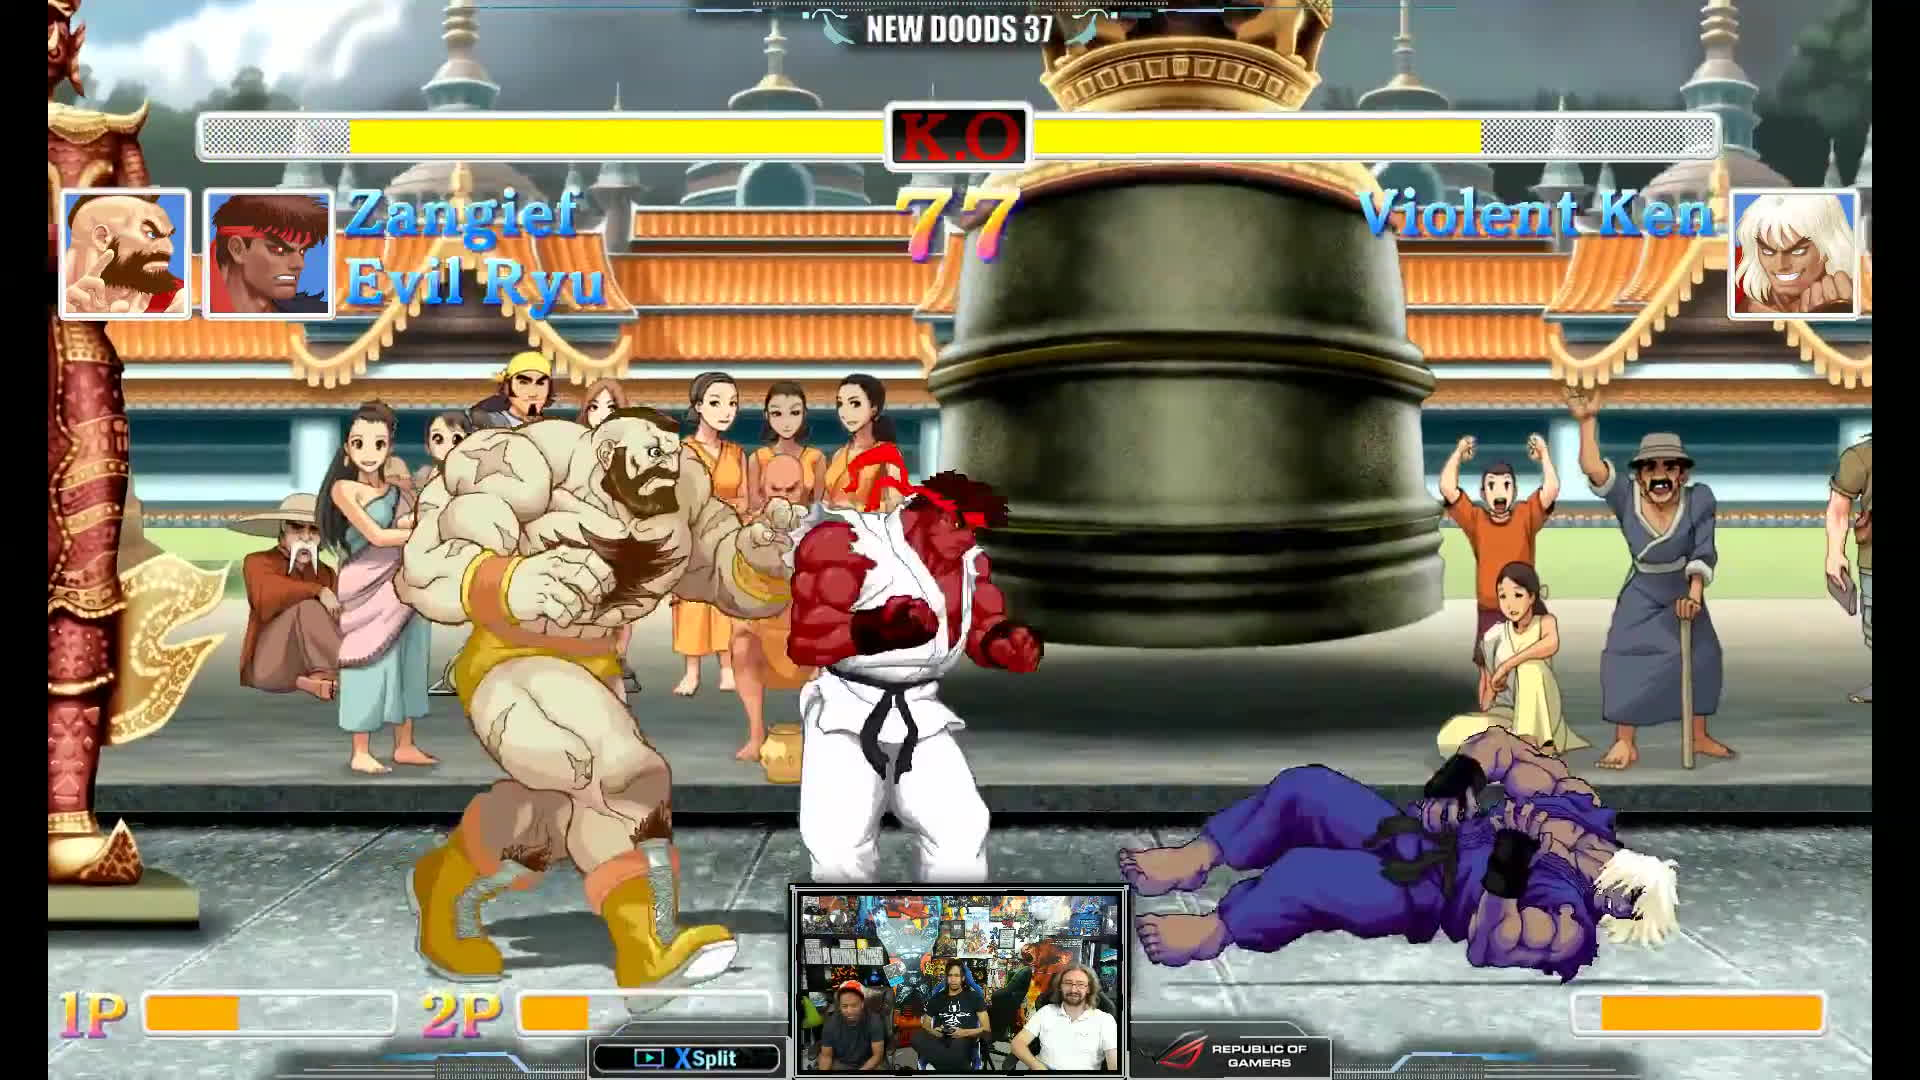 Ultra Street Fighter 2 Gifs Search | Search & Share on Homdor